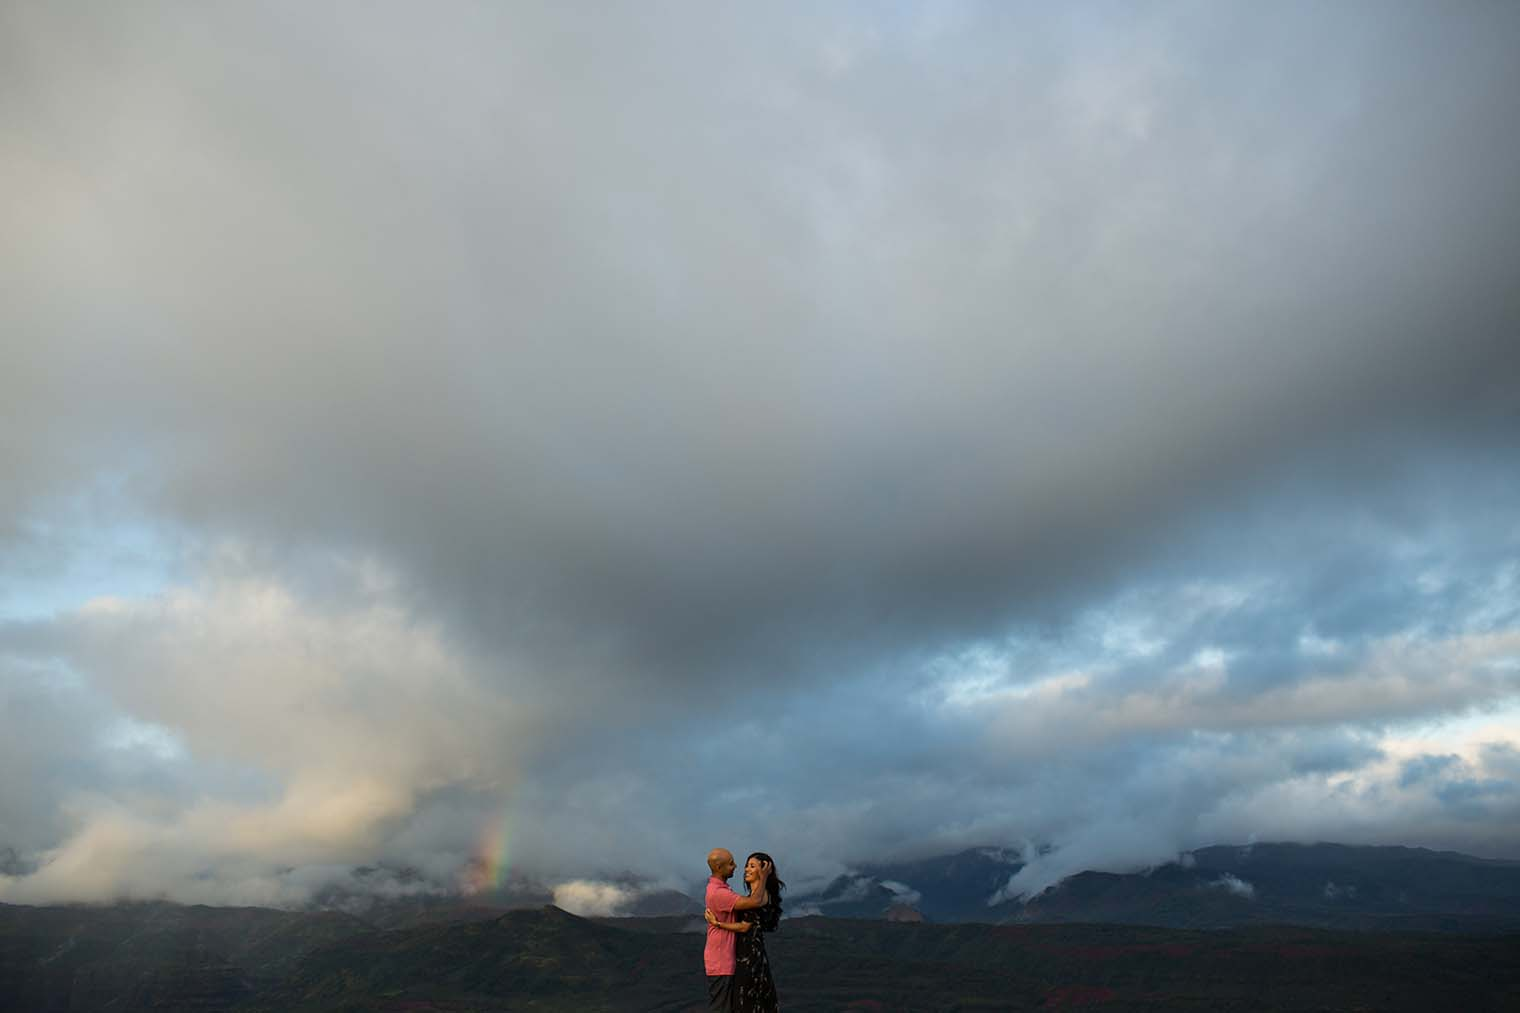 Sunset Engagement Photos at Waimea Canyon in Kauai Hawaii